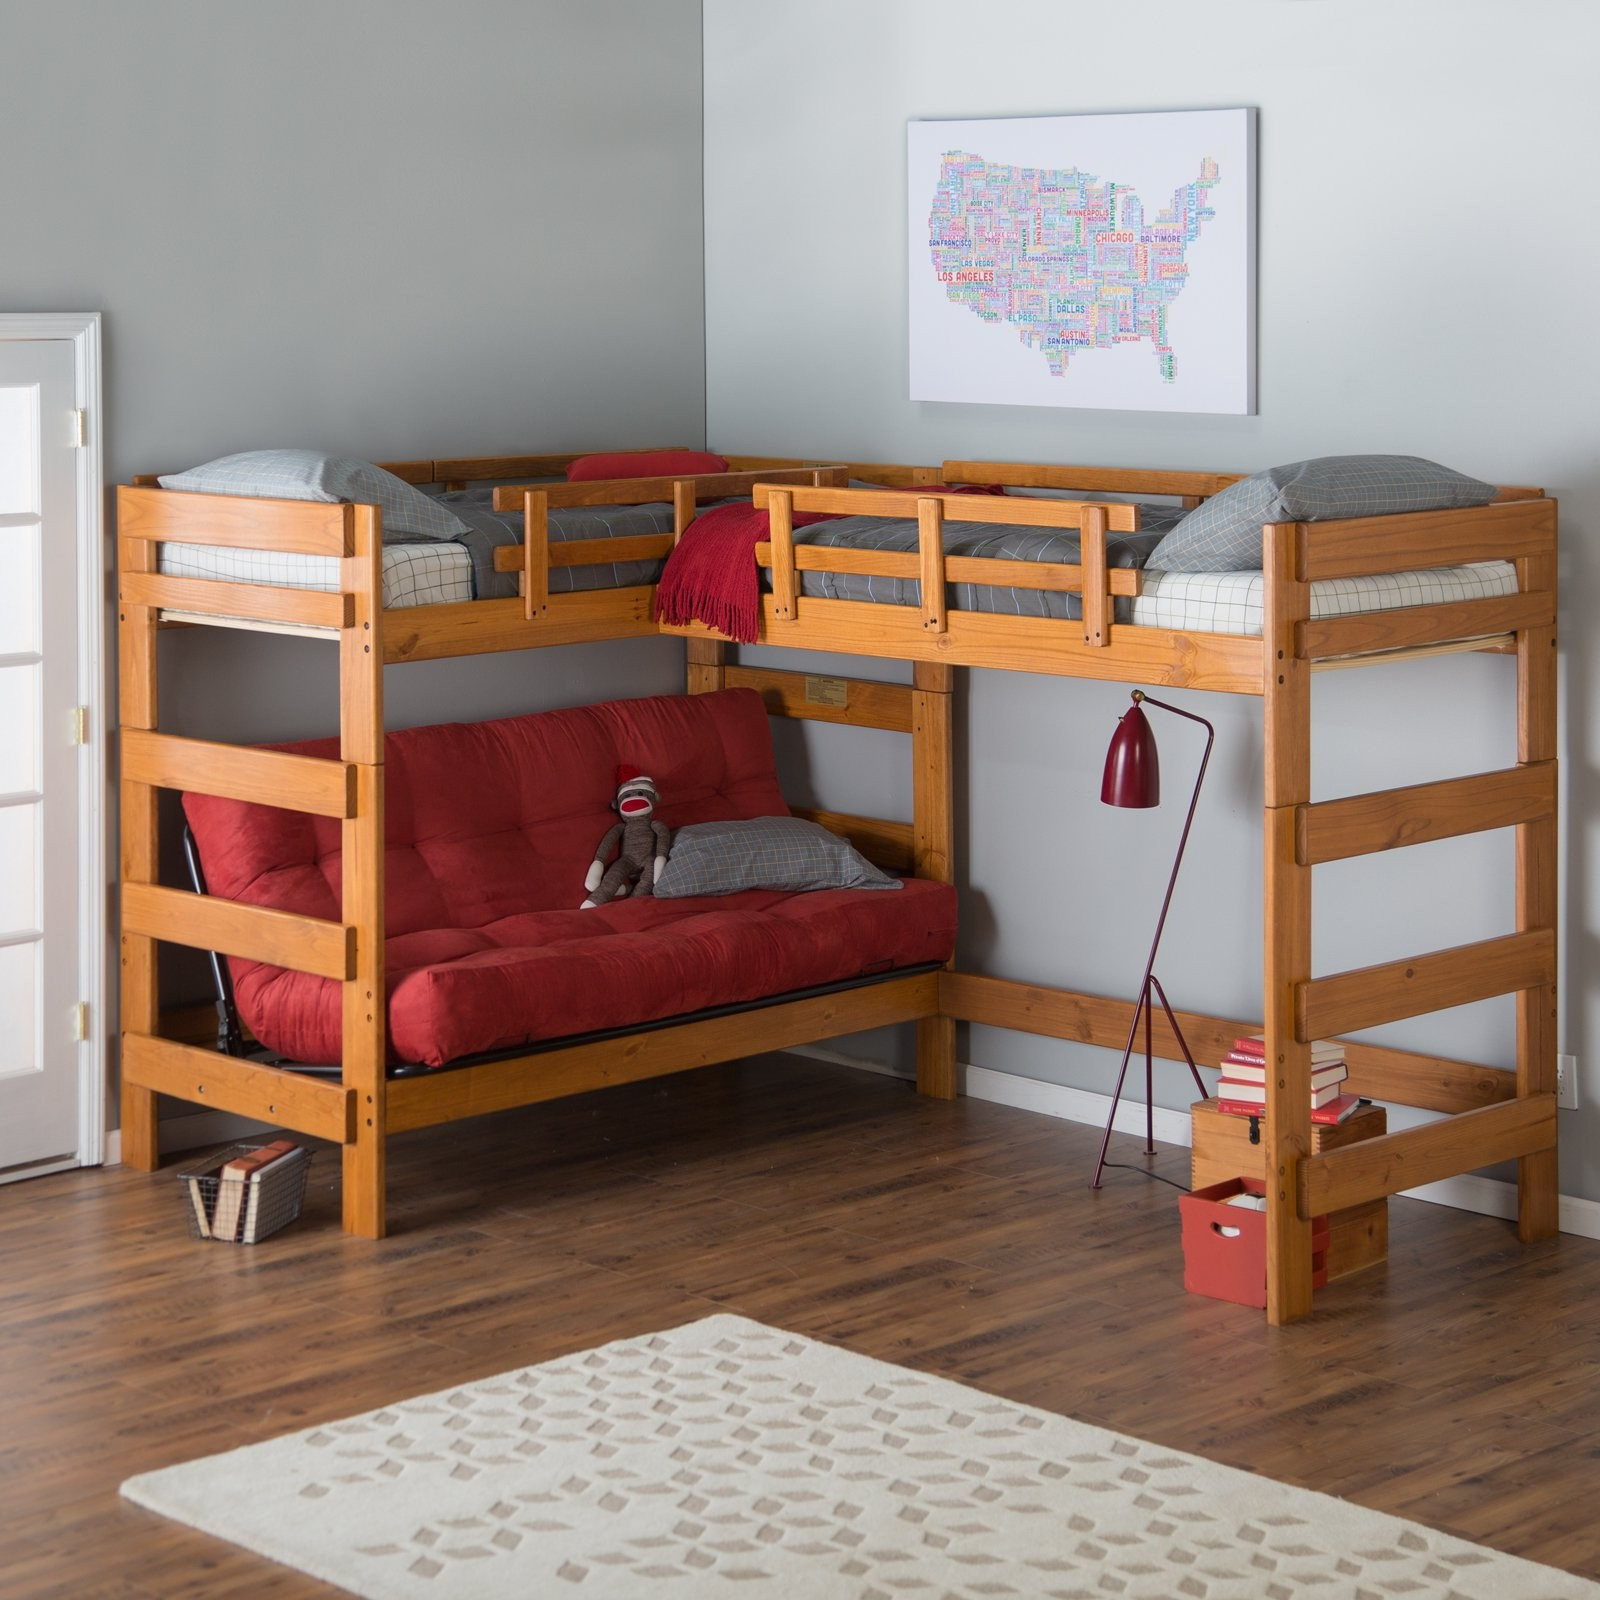 Kids Bunk Beds With Storage reader question - modern bunk beds for small bedrooms - the mom edit